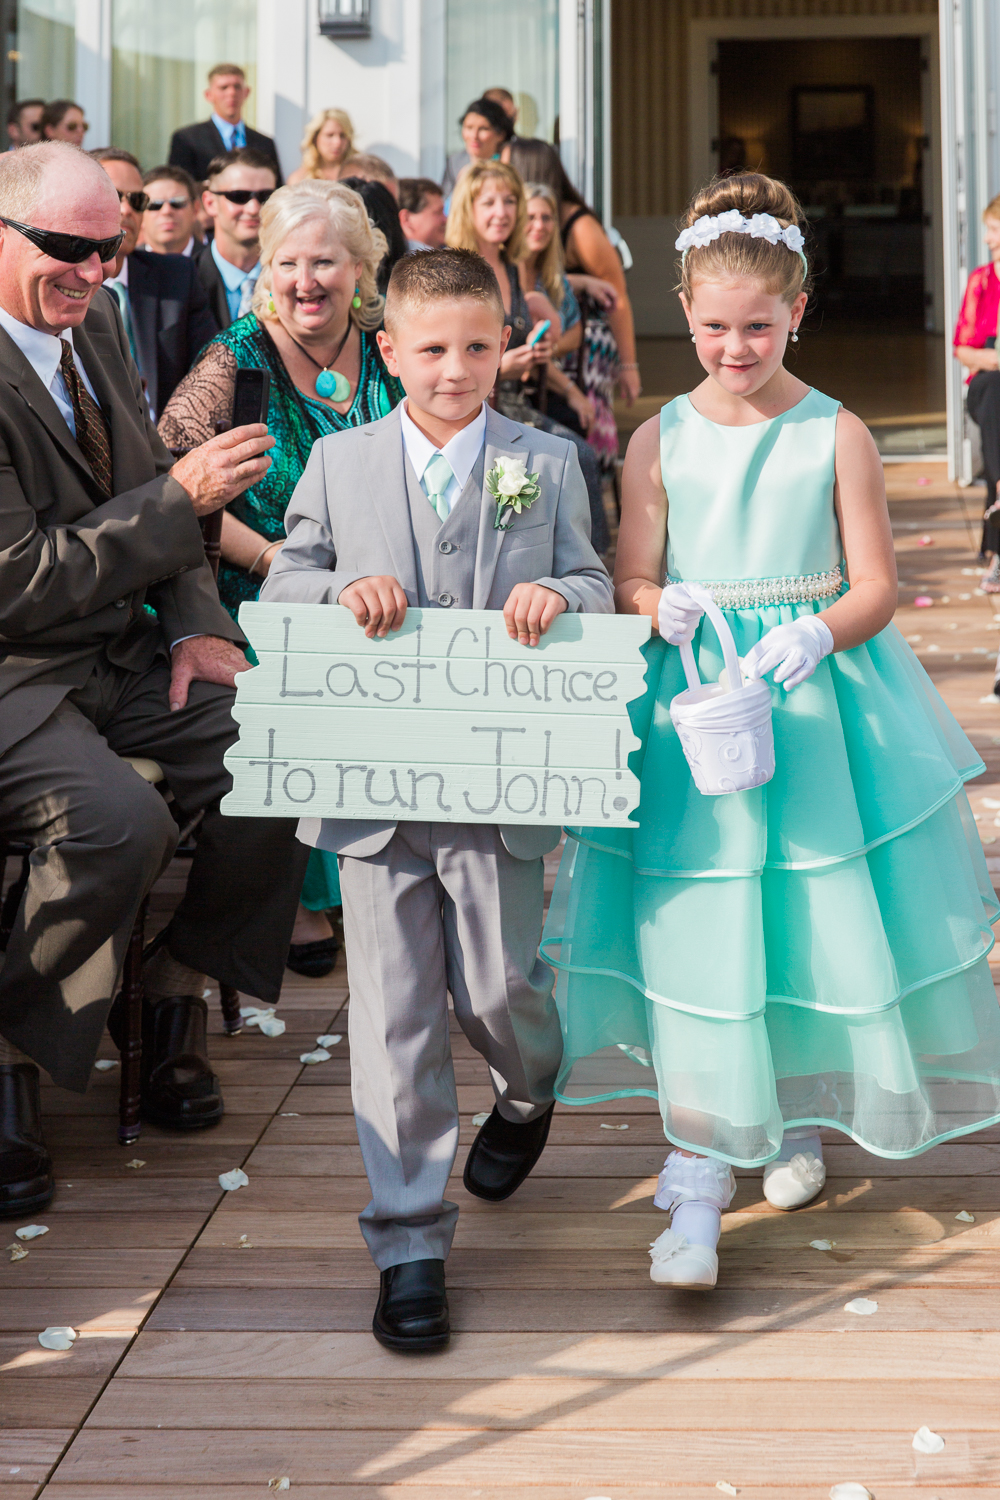 beauport-hotel-gloucester-wedding-photography-53